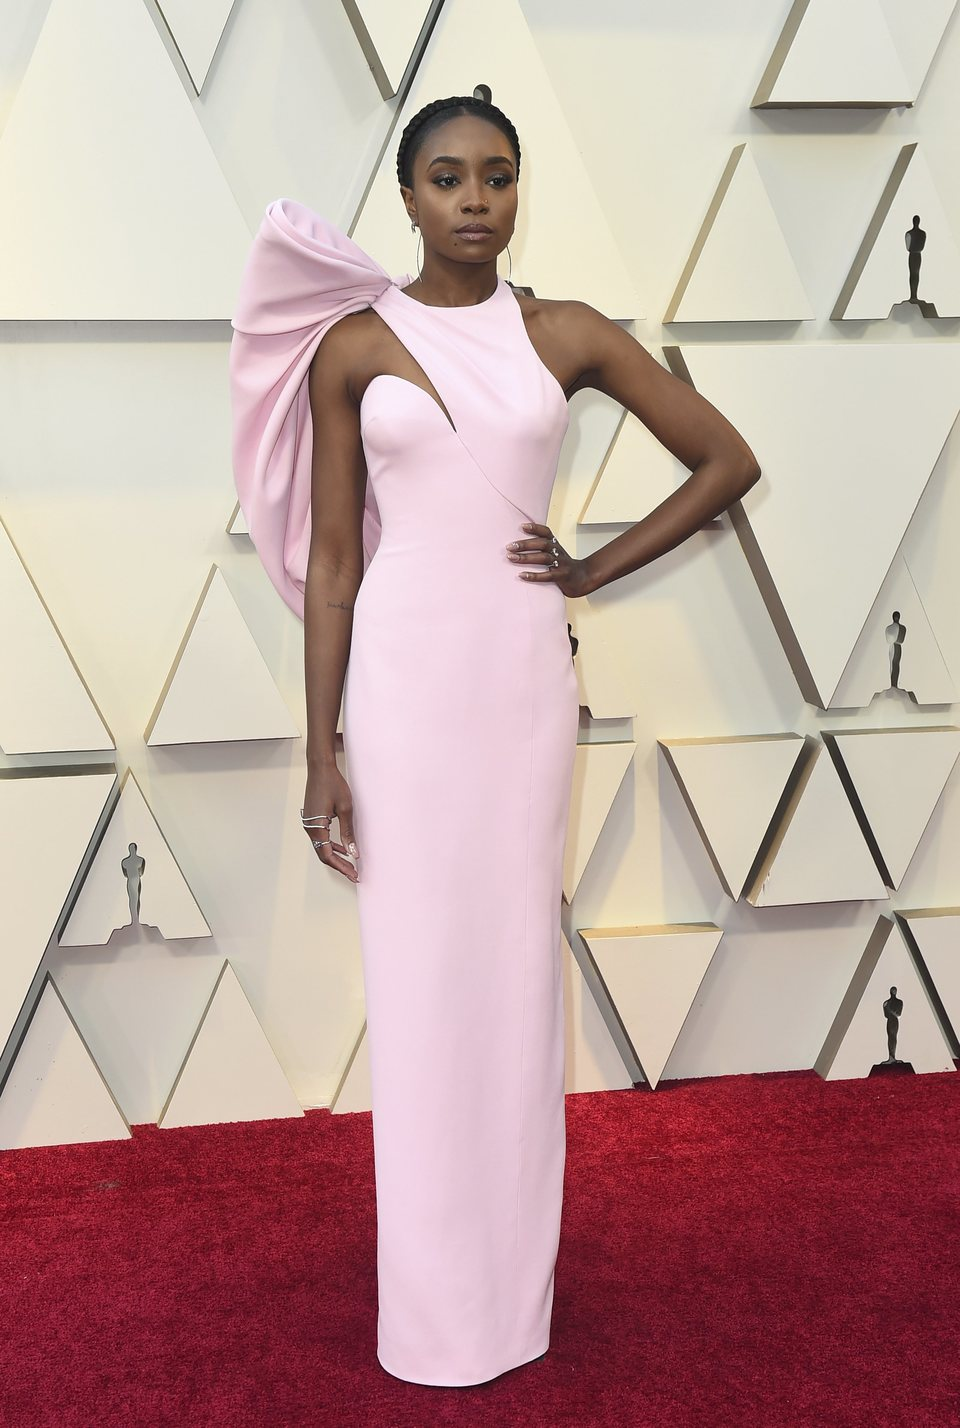 Kiki Layne on the red carpet at the Oscars 2019